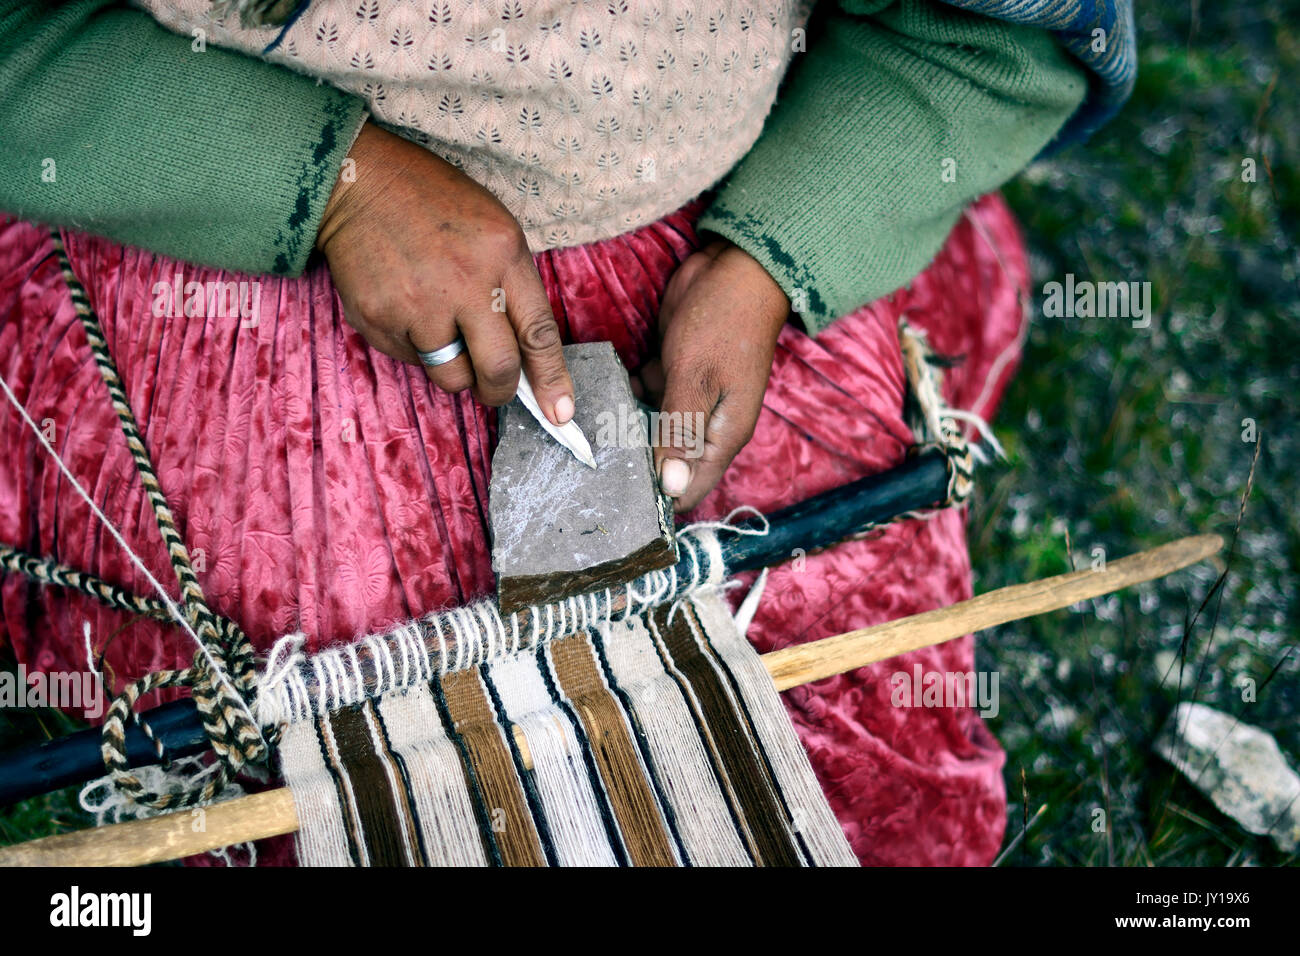 woman working on a traditional weaving loom in Peru - Stock Image